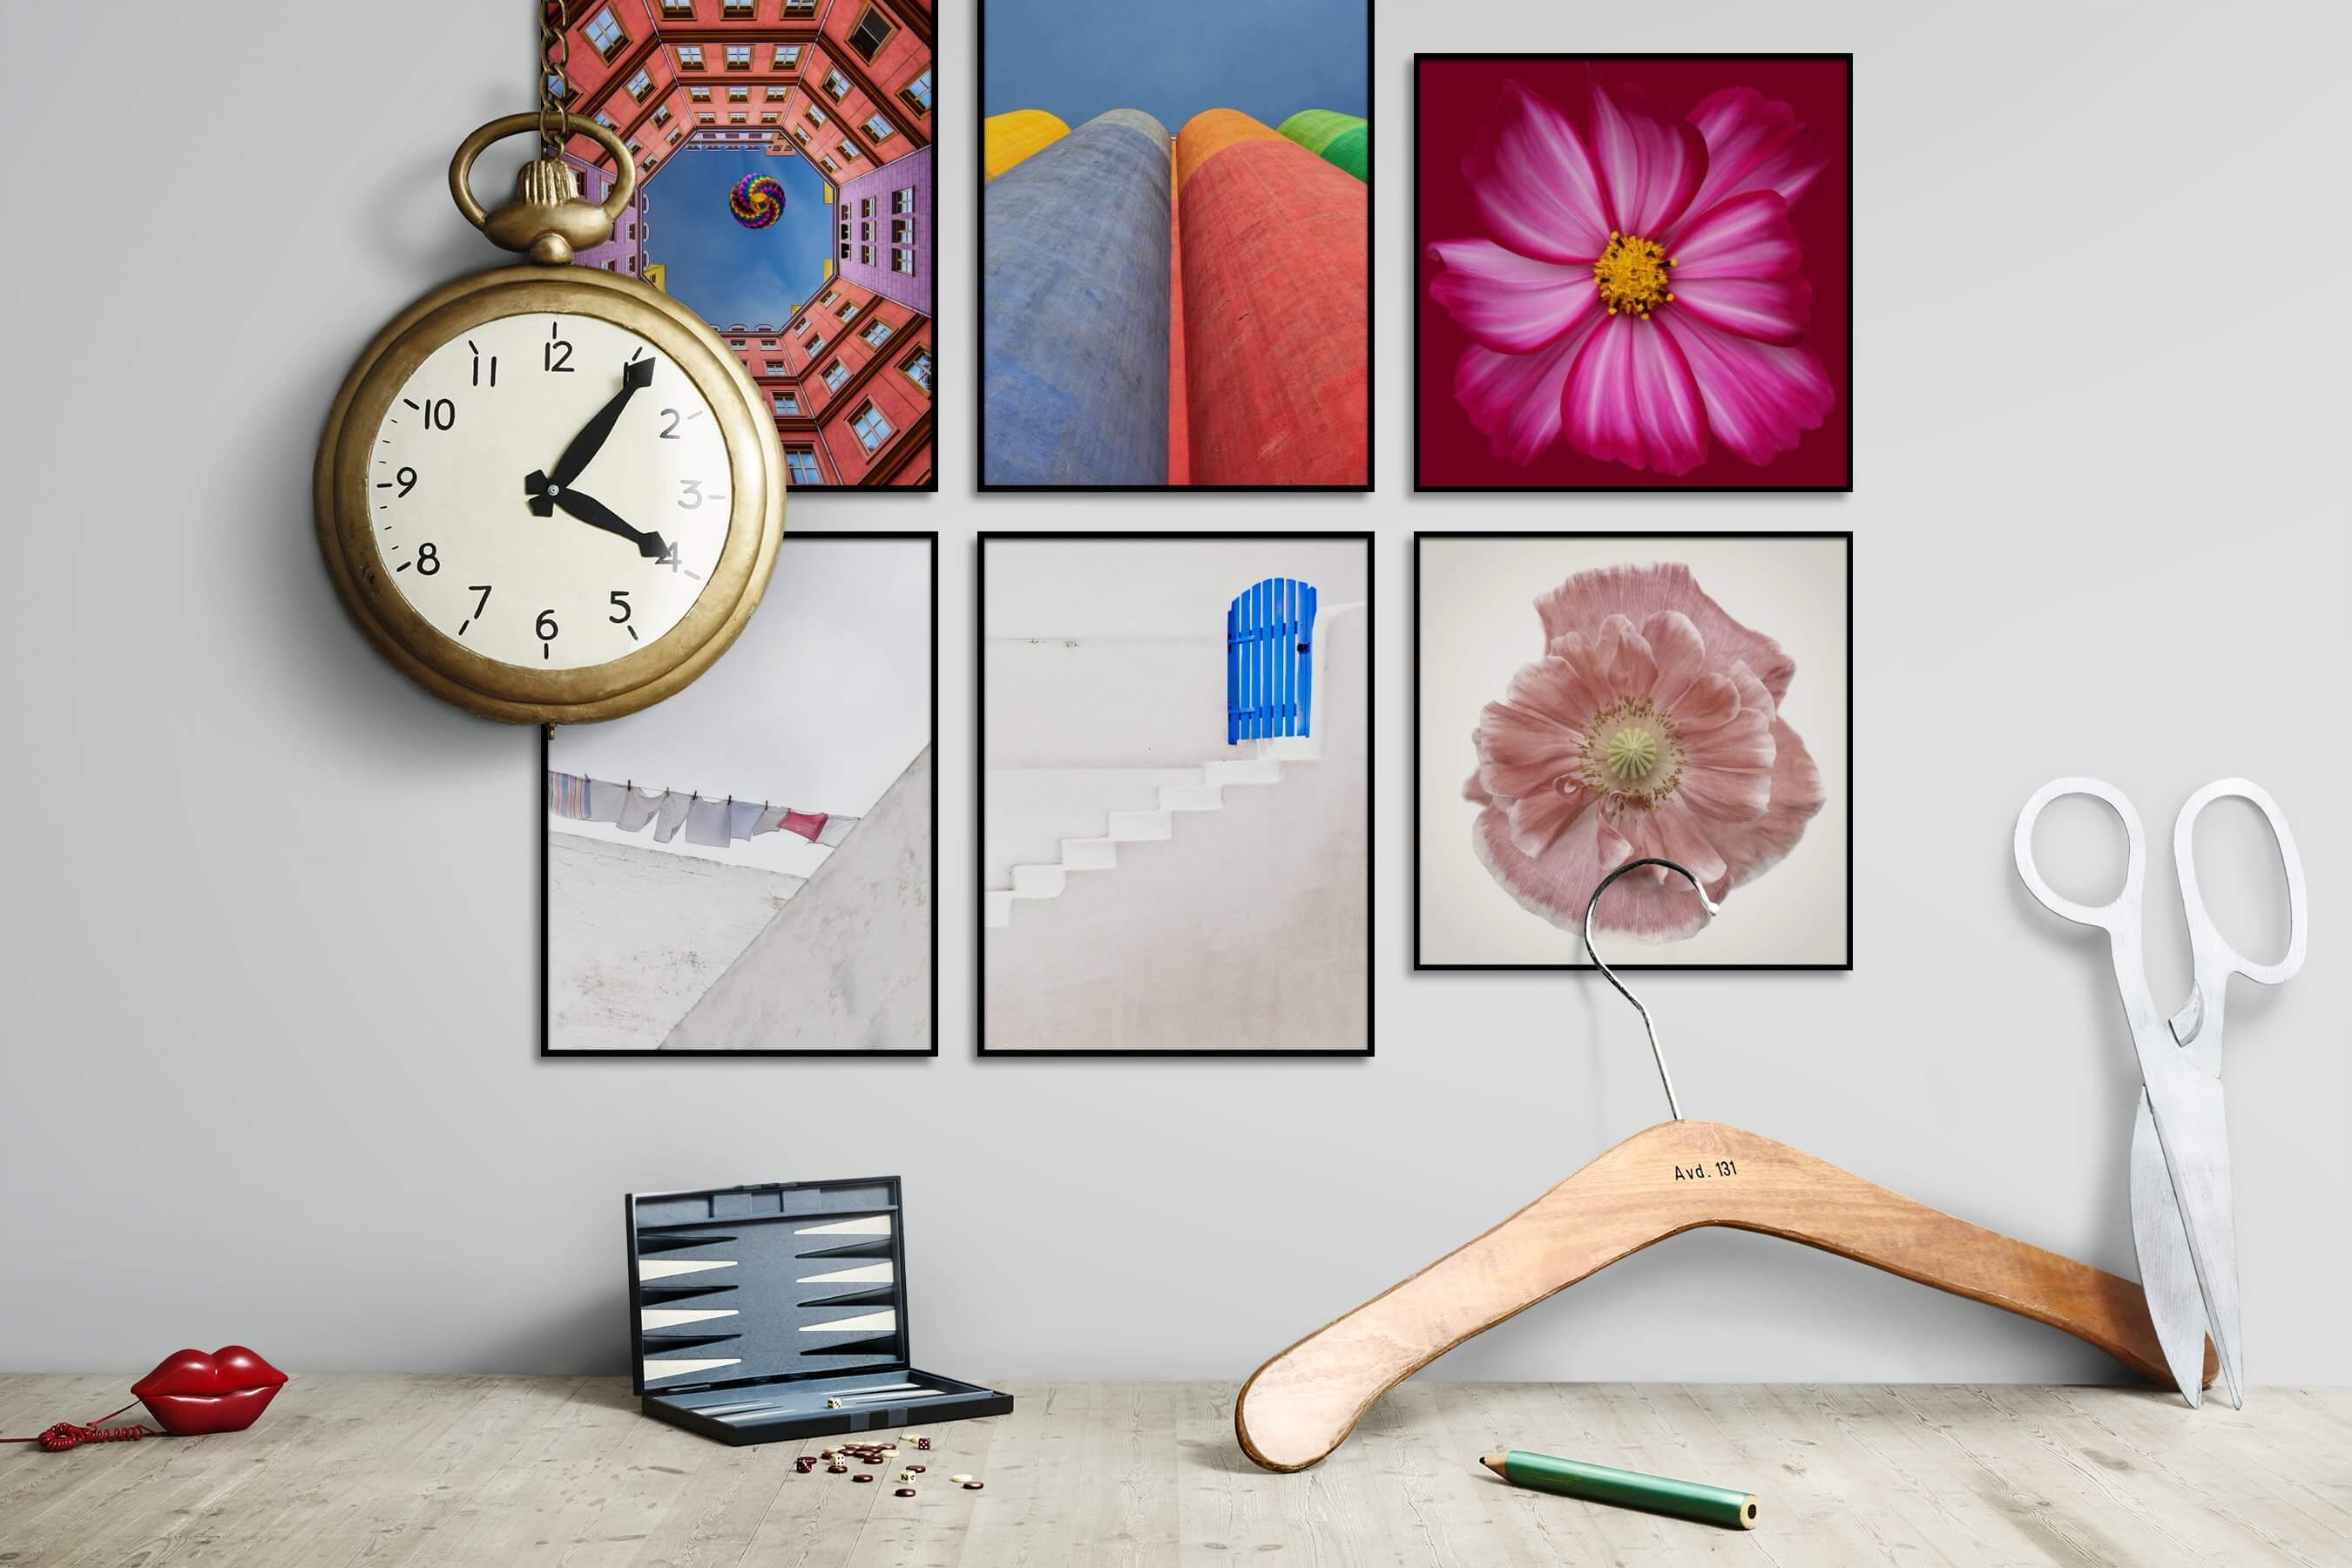 Gallery wall idea with six framed pictures arranged on a wall depicting Colorful, For the Moderate, City Life, For the Minimalist, Flowers & Plants, and Vintage